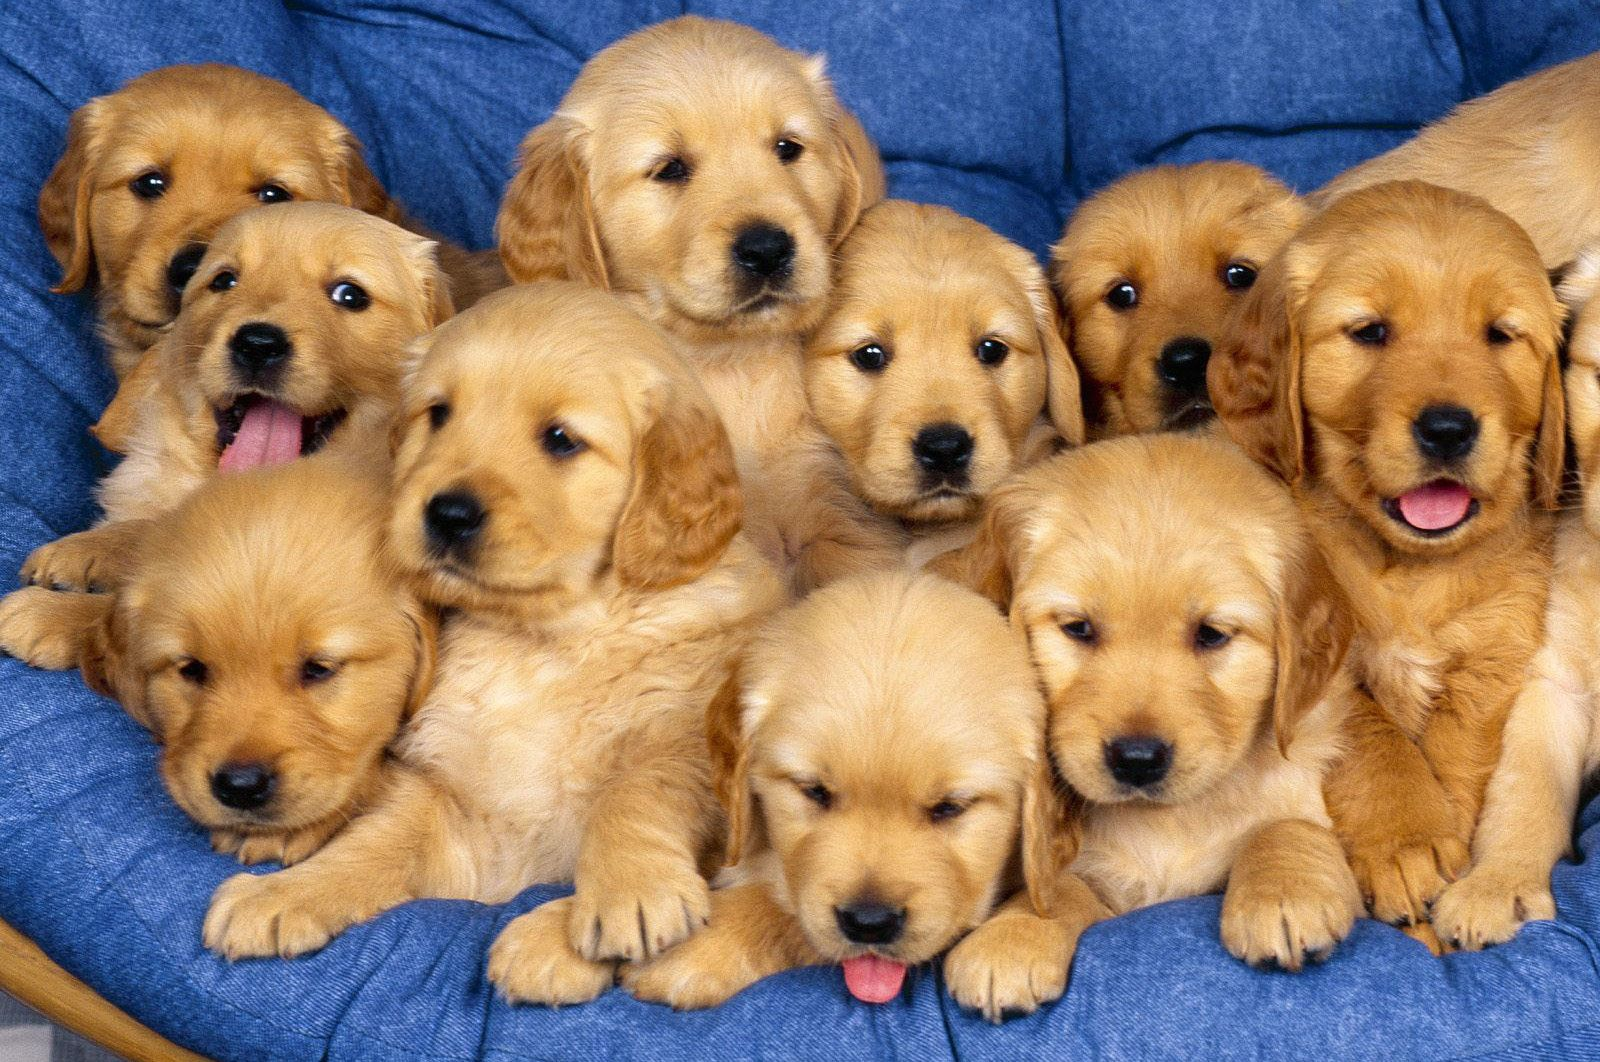 Cute Golden Retriever Puppies Dog Picture Cute Golden Retriever